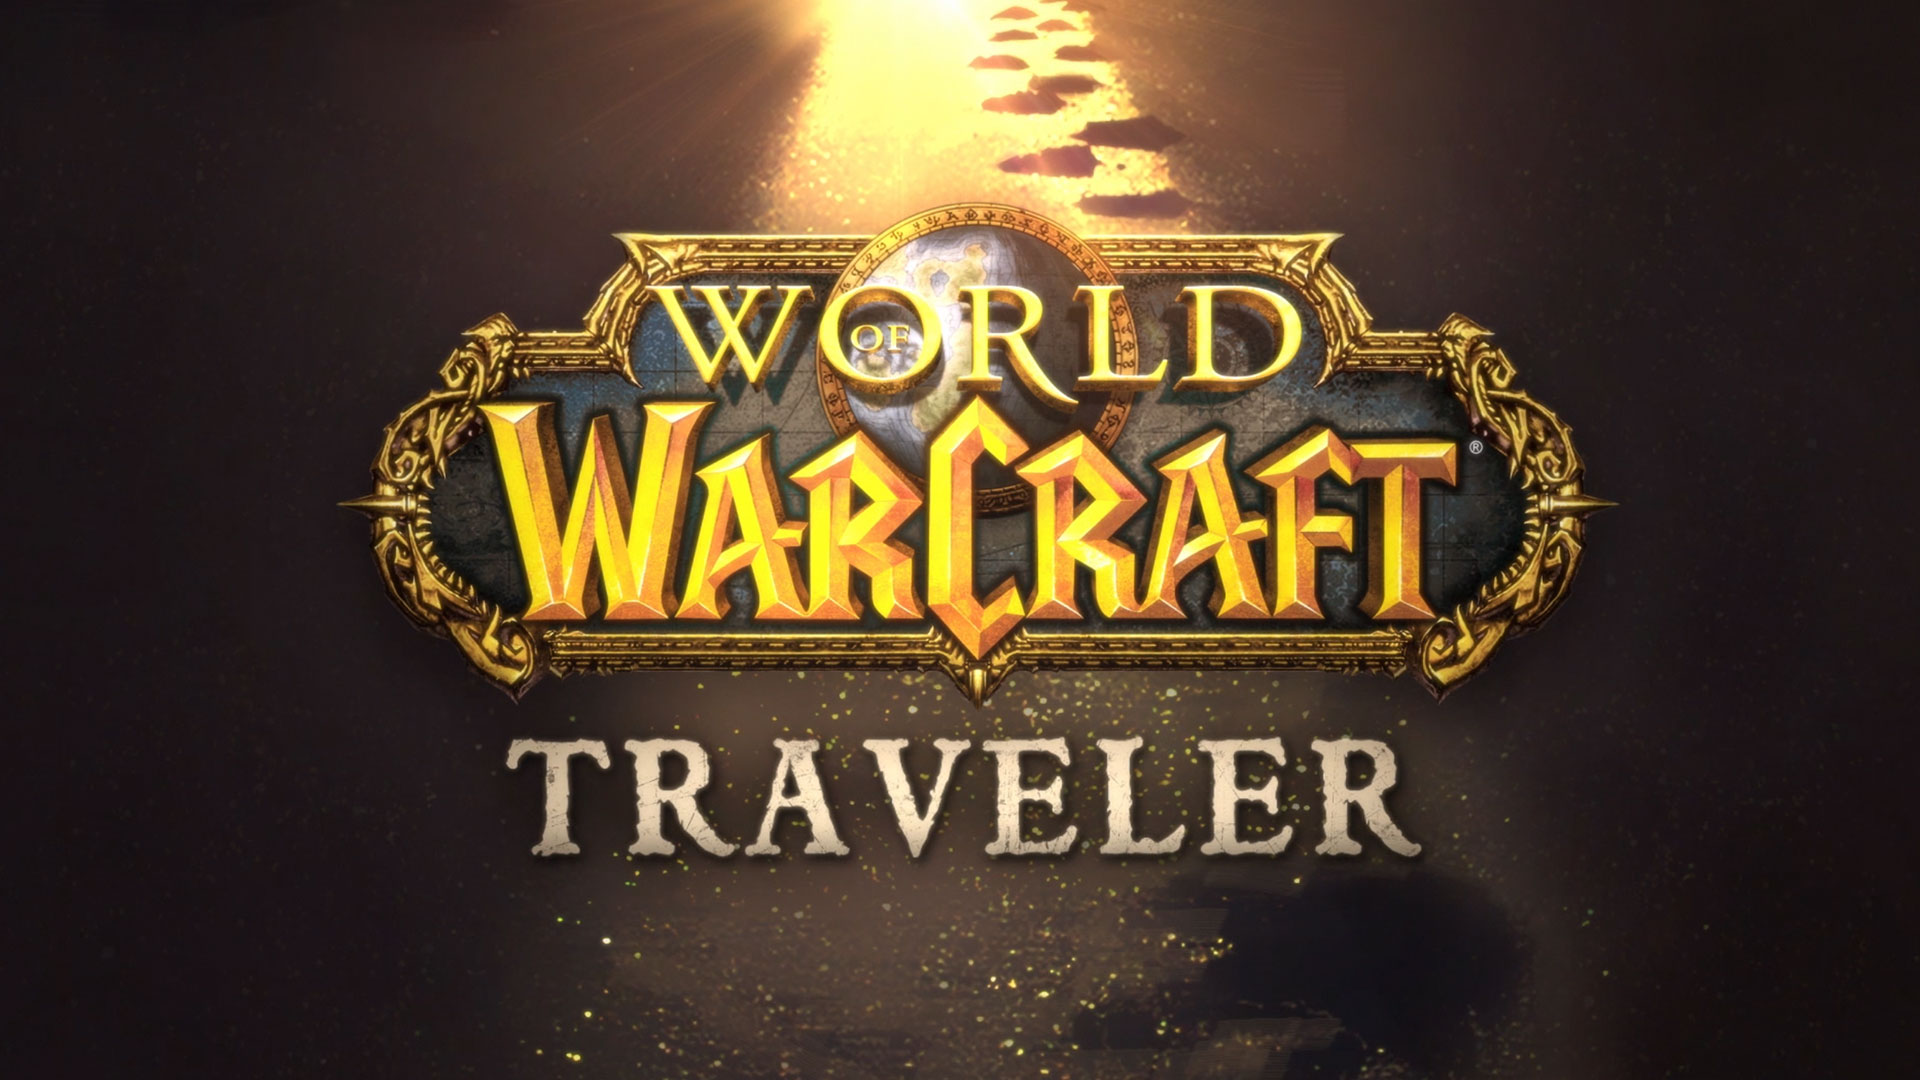 'World of Warcraft' to get a book series aimed at kids